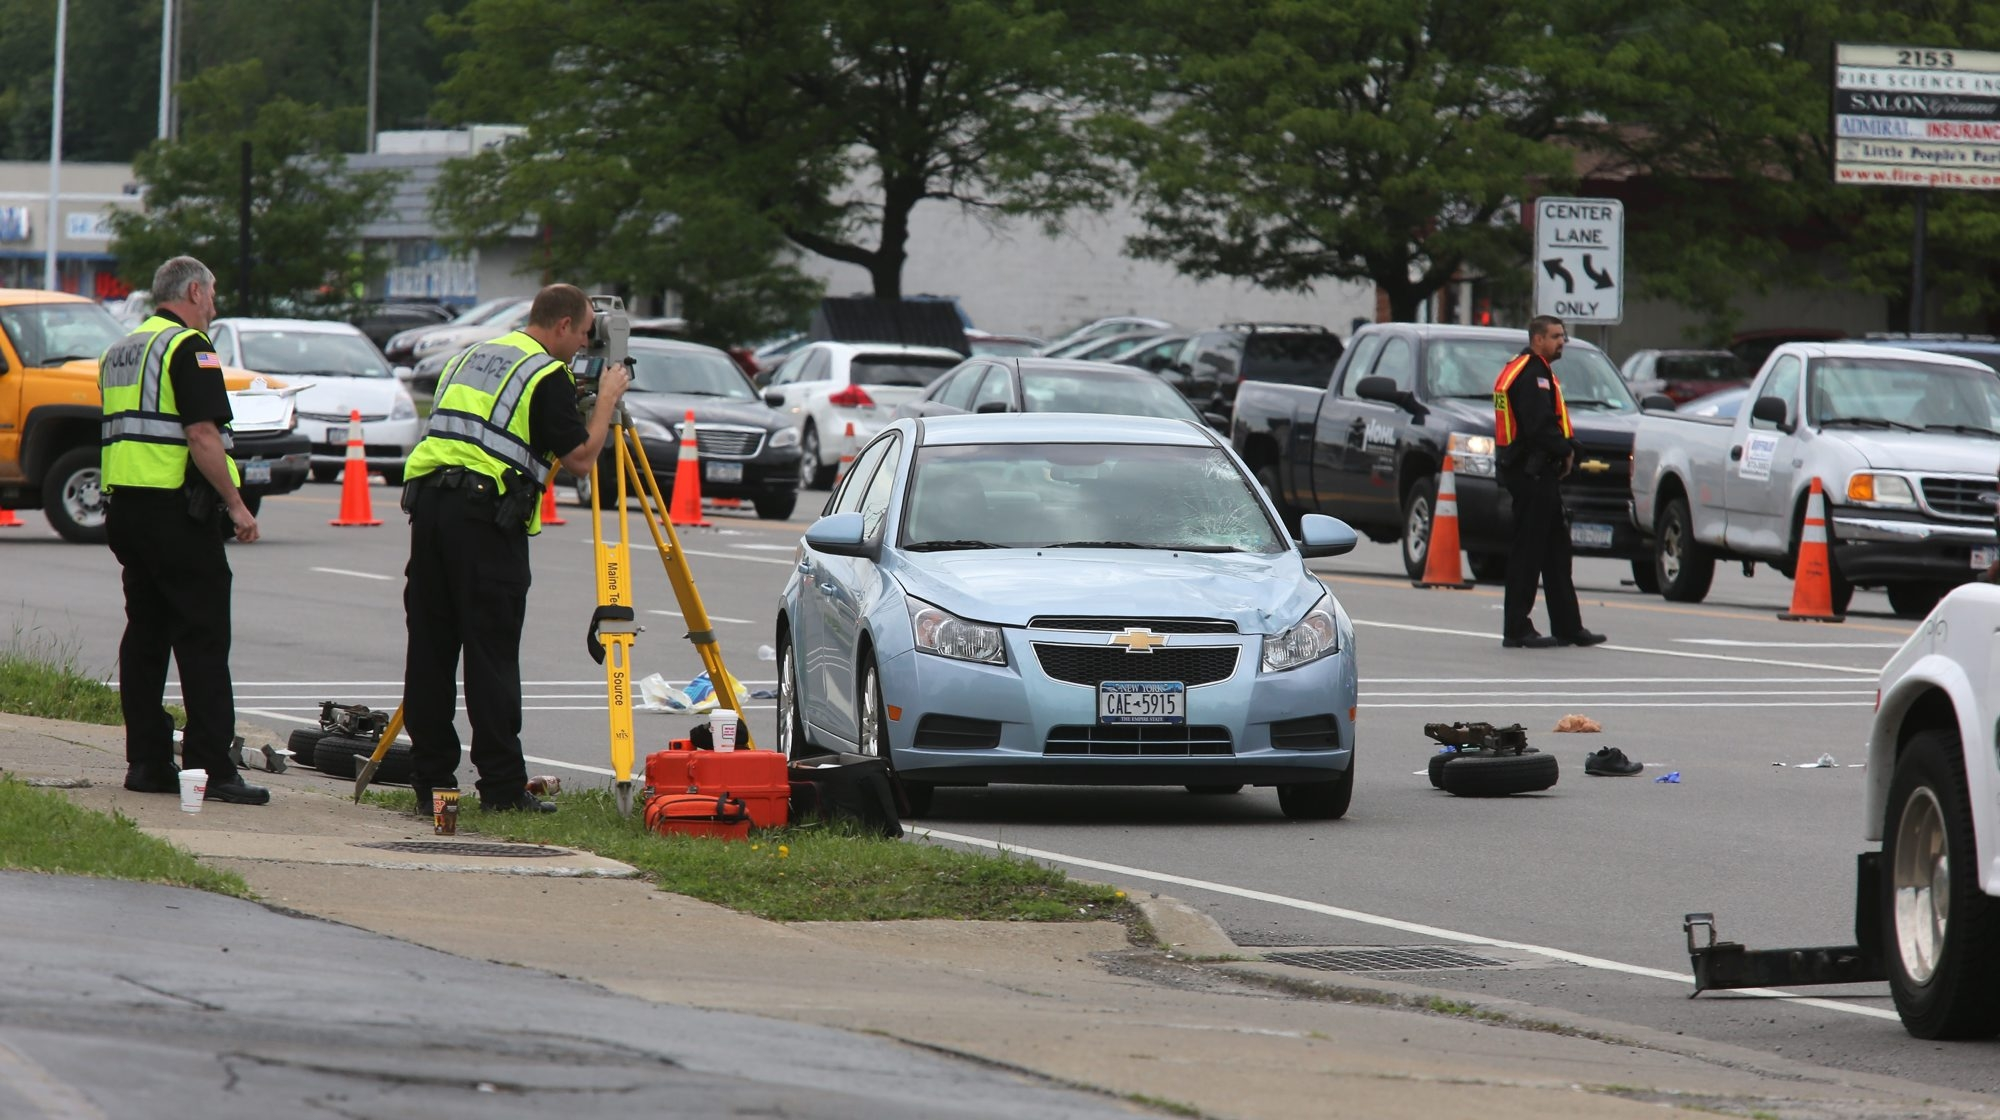 Police investigate the scene of a fatal pedestrian accident on Niagara Falls Boulevard June 5. (Charles Lewis/Buffalo News)